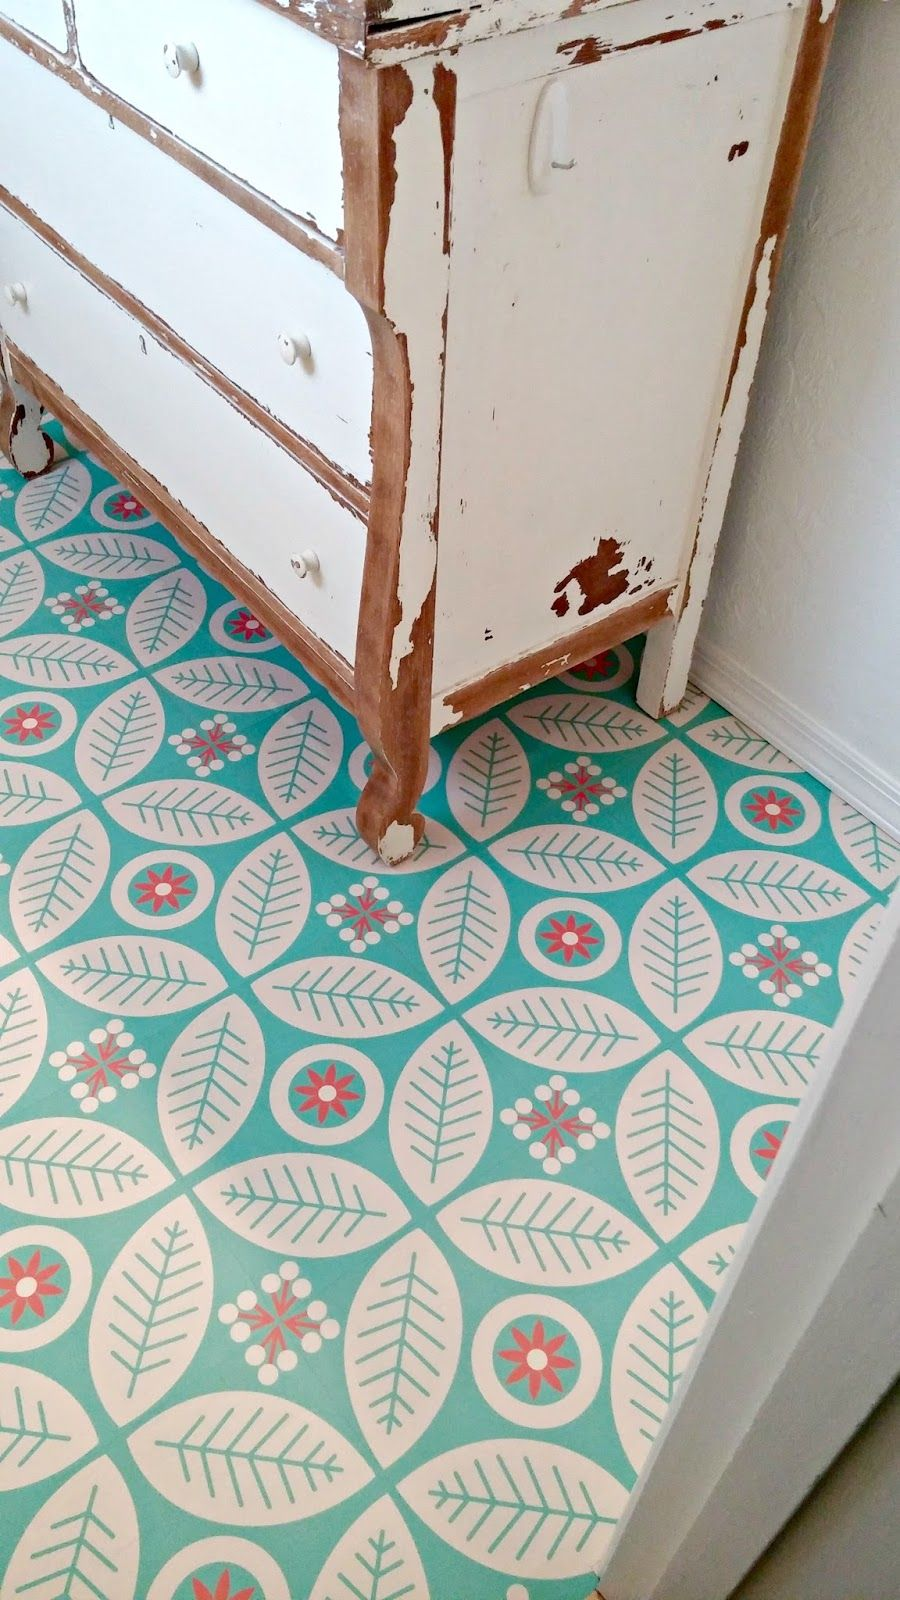 Half bath redo the happiest floors on the block adhesive vinyl half bath redo the happiest floors on the block floor stickersstair stickersbathroom vinyl floor tilesself adhesive dailygadgetfo Image collections